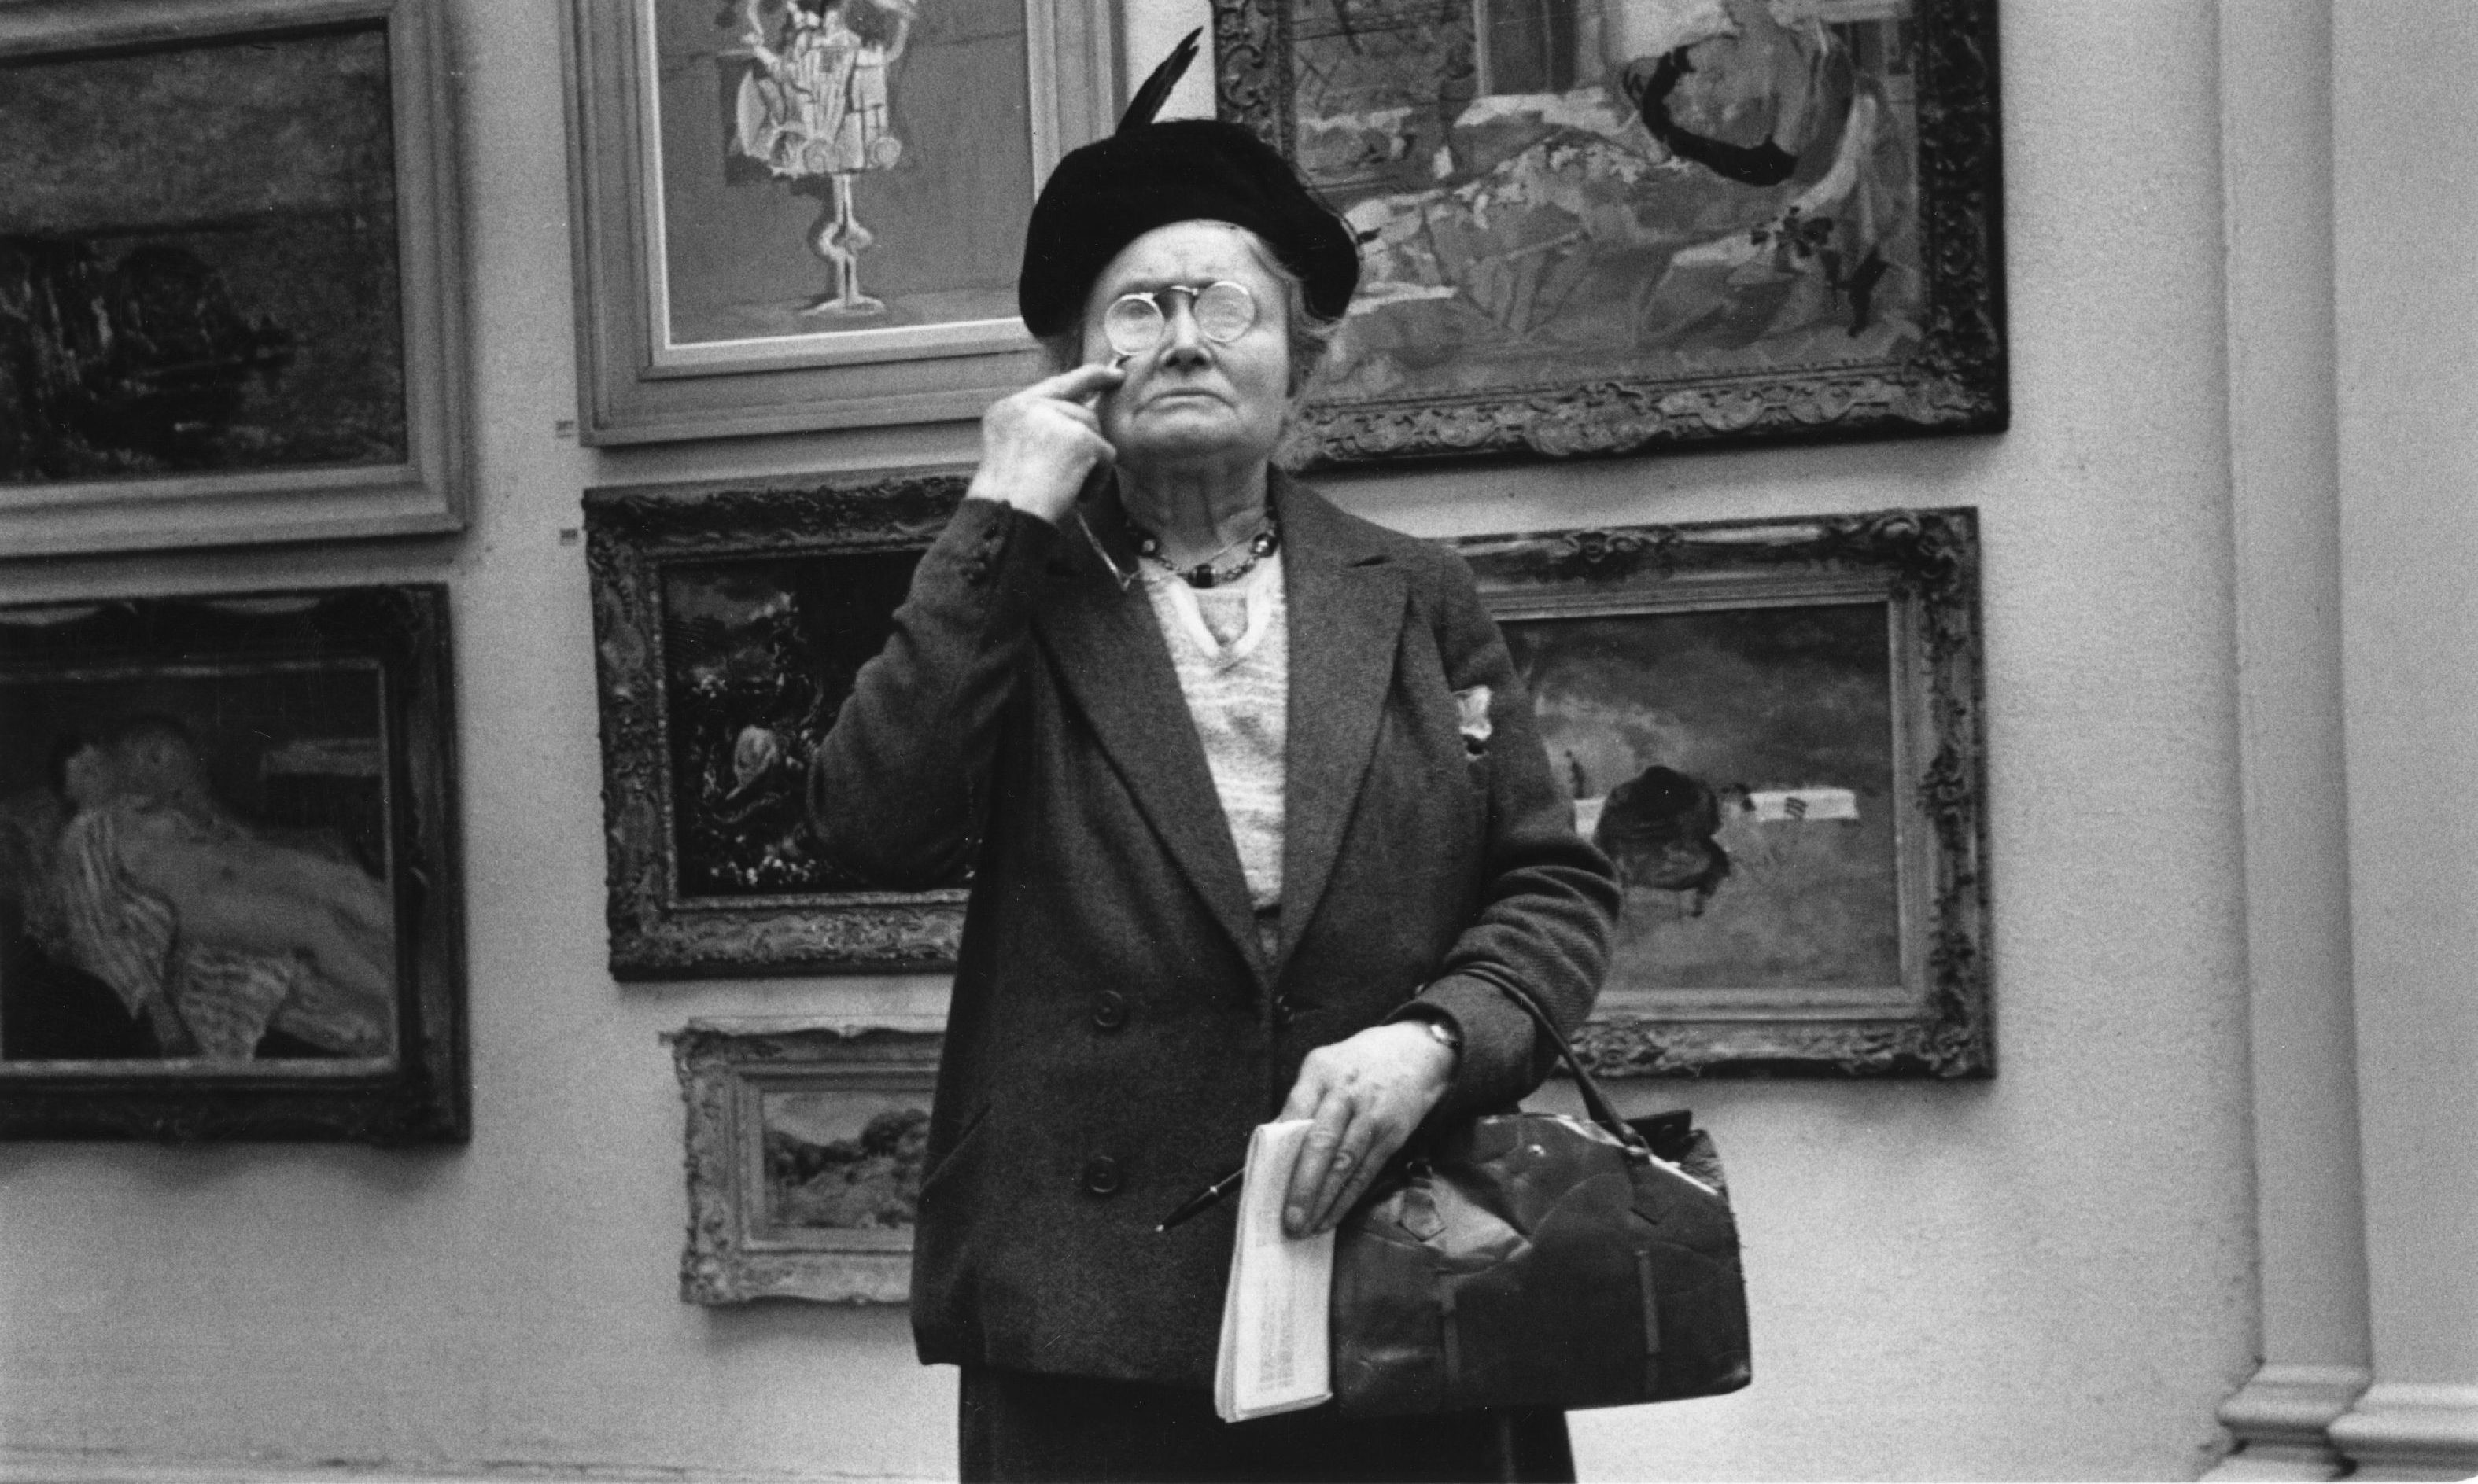 An elderly woman peers at a painting through a magnifying glass at the Tate Gallery, London. Original Publication: Picture Post